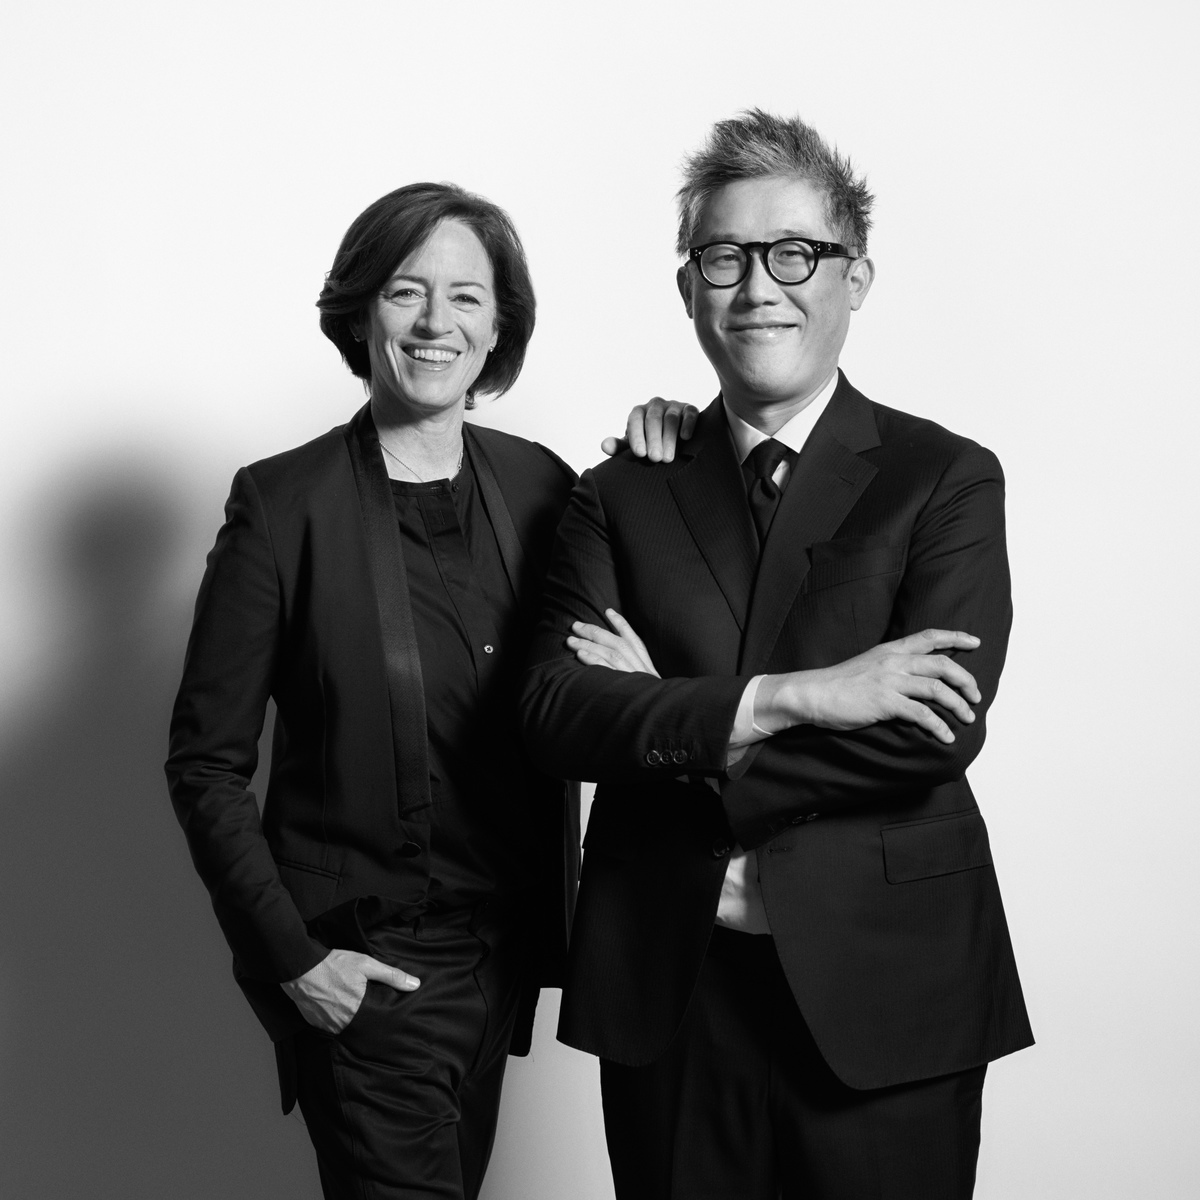 Sharon Johnston and Mark Lee. Image: Eric Staudenmeier via The Chicago Architecture Biennial